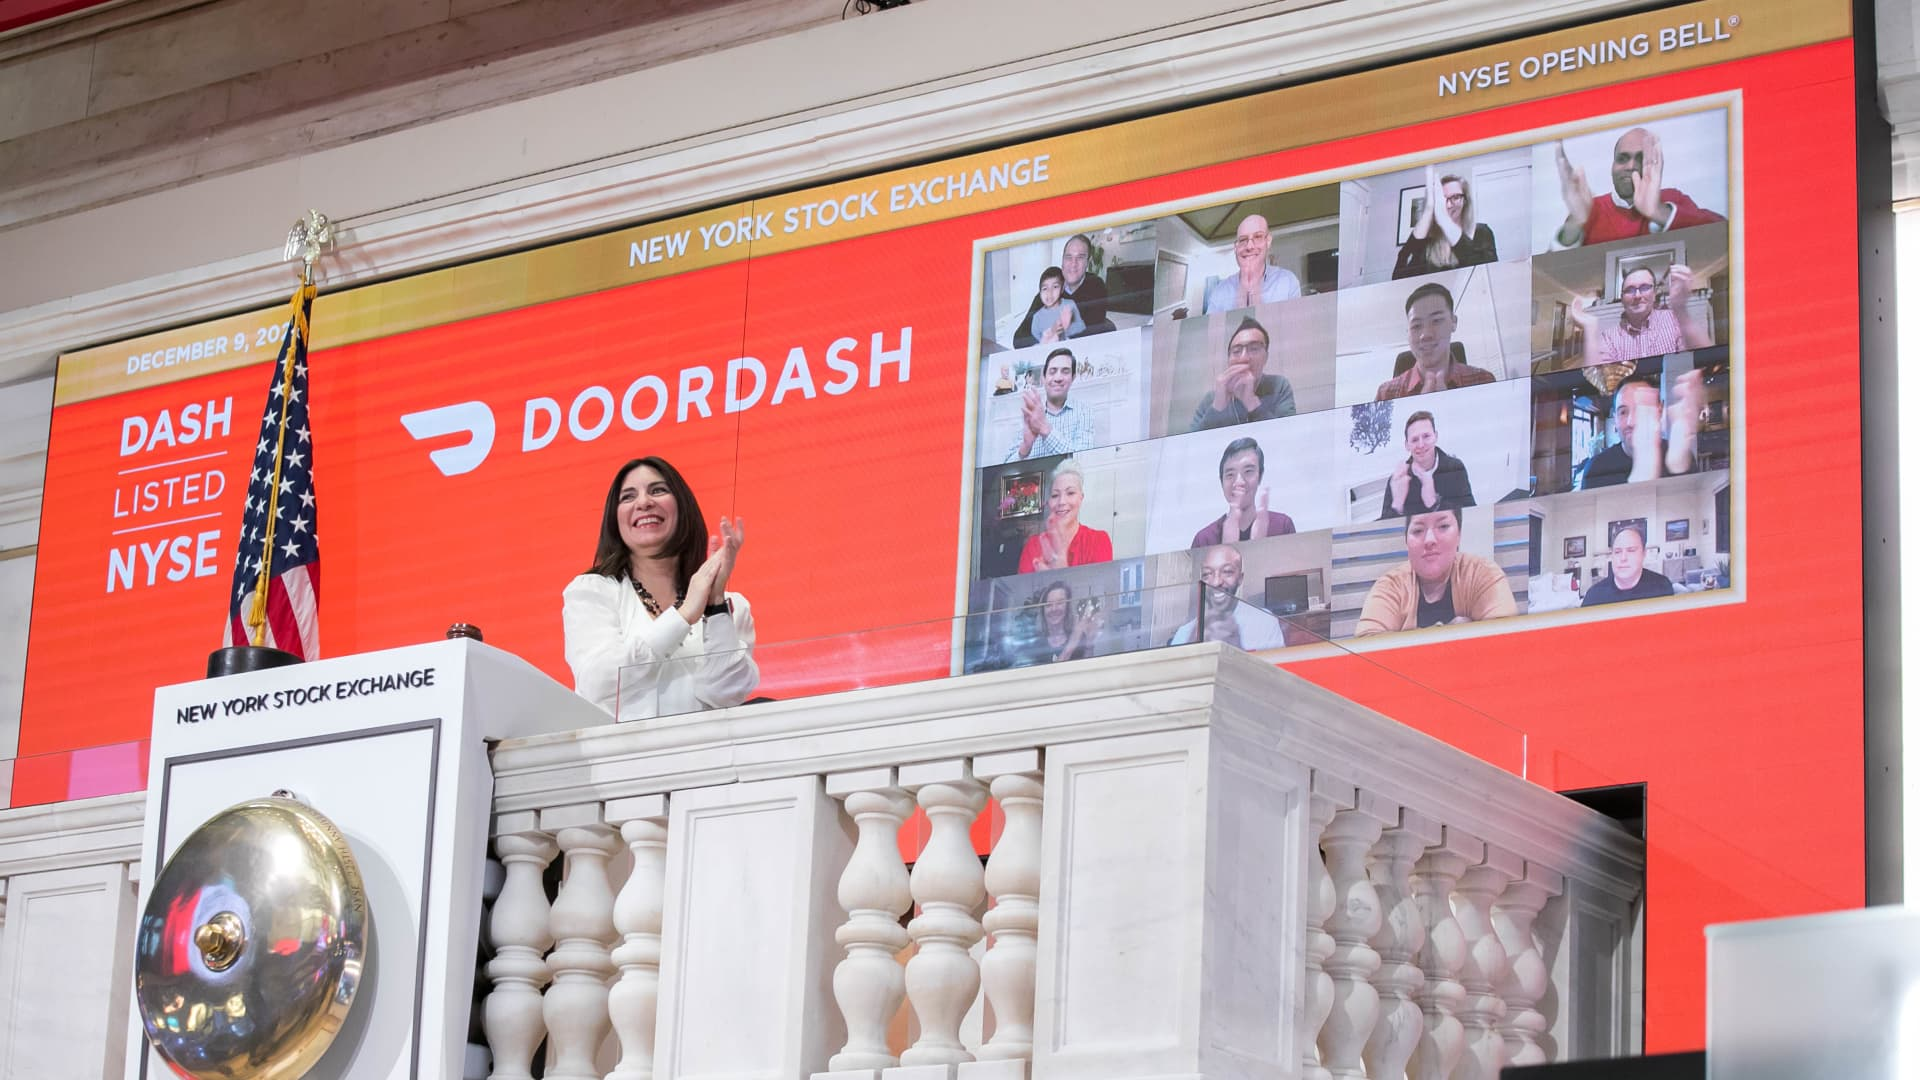 The New York Stock Exchange welcomes executives and guests of DoorDash, Inc. (NYSE: DASH), today, Wednesday, December 9, 2020, in celebration of its Initial Public Offering.